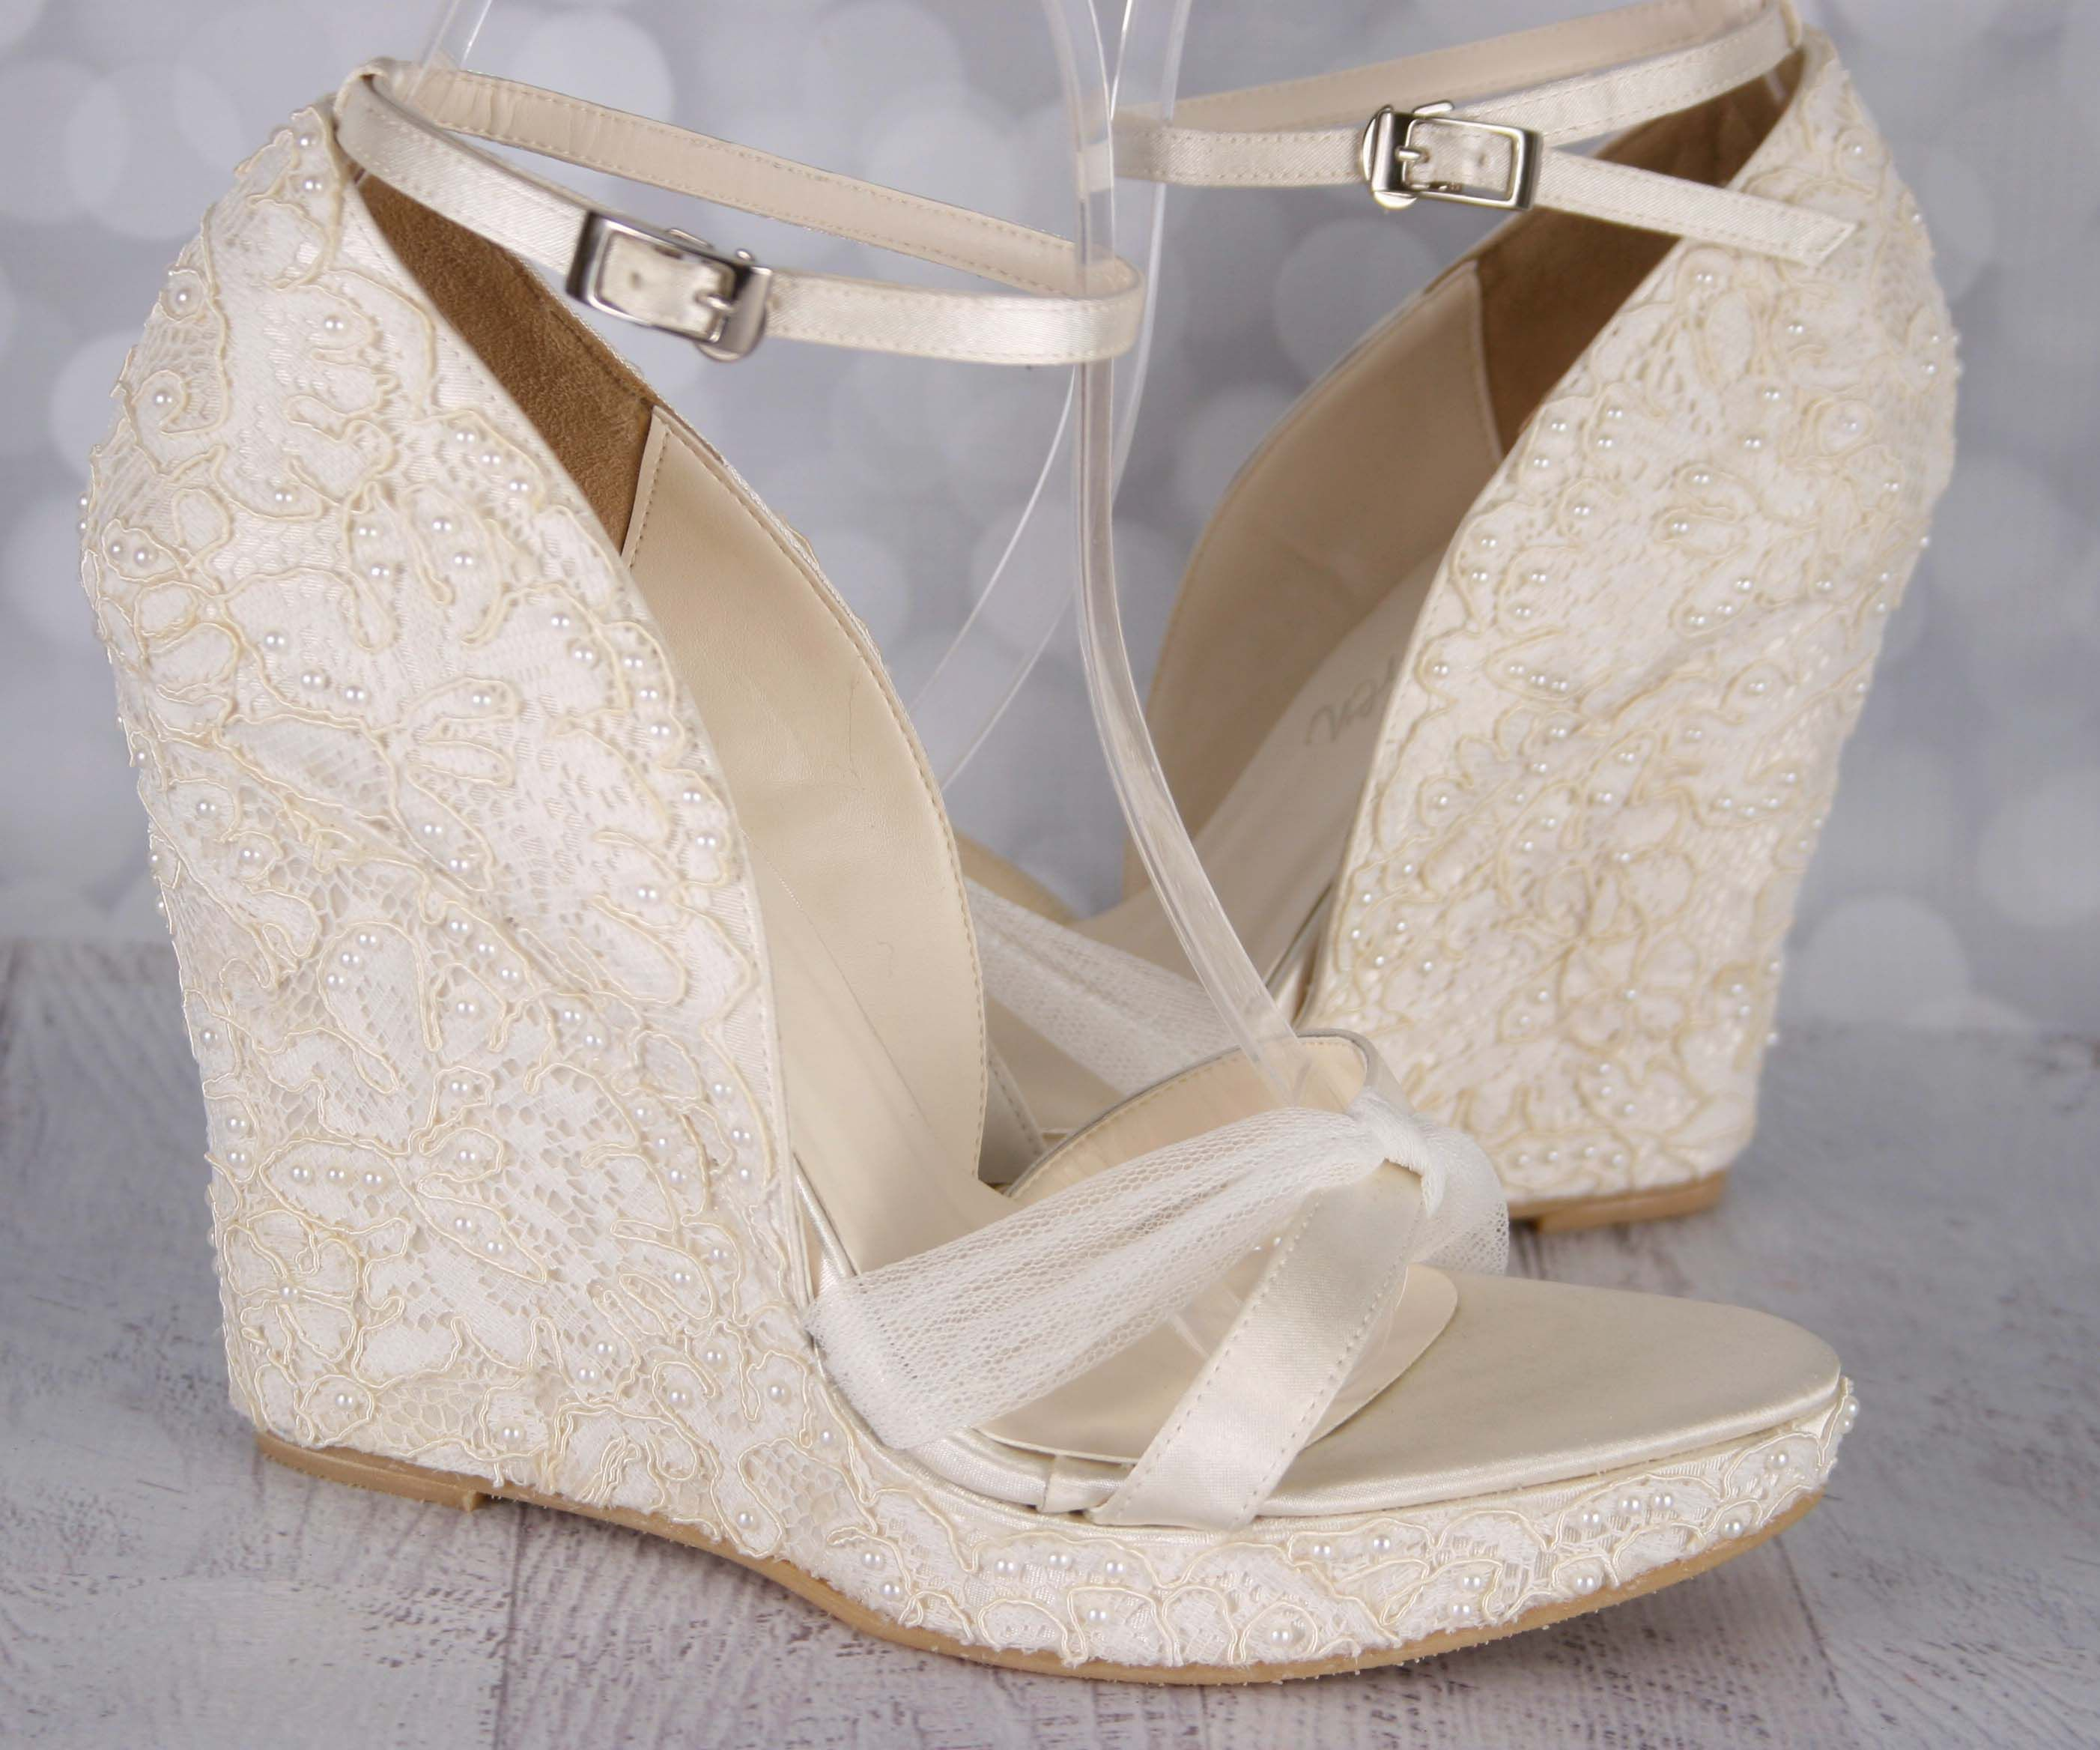 Custom Wedding Shoes Wedding Wedges Wedge Wedding Shoes Lace Wedding Shoes Lace Wedges Lace S Wedding Shoes Lace Fun Wedding Shoes Wedding Shoes Wedge Lace